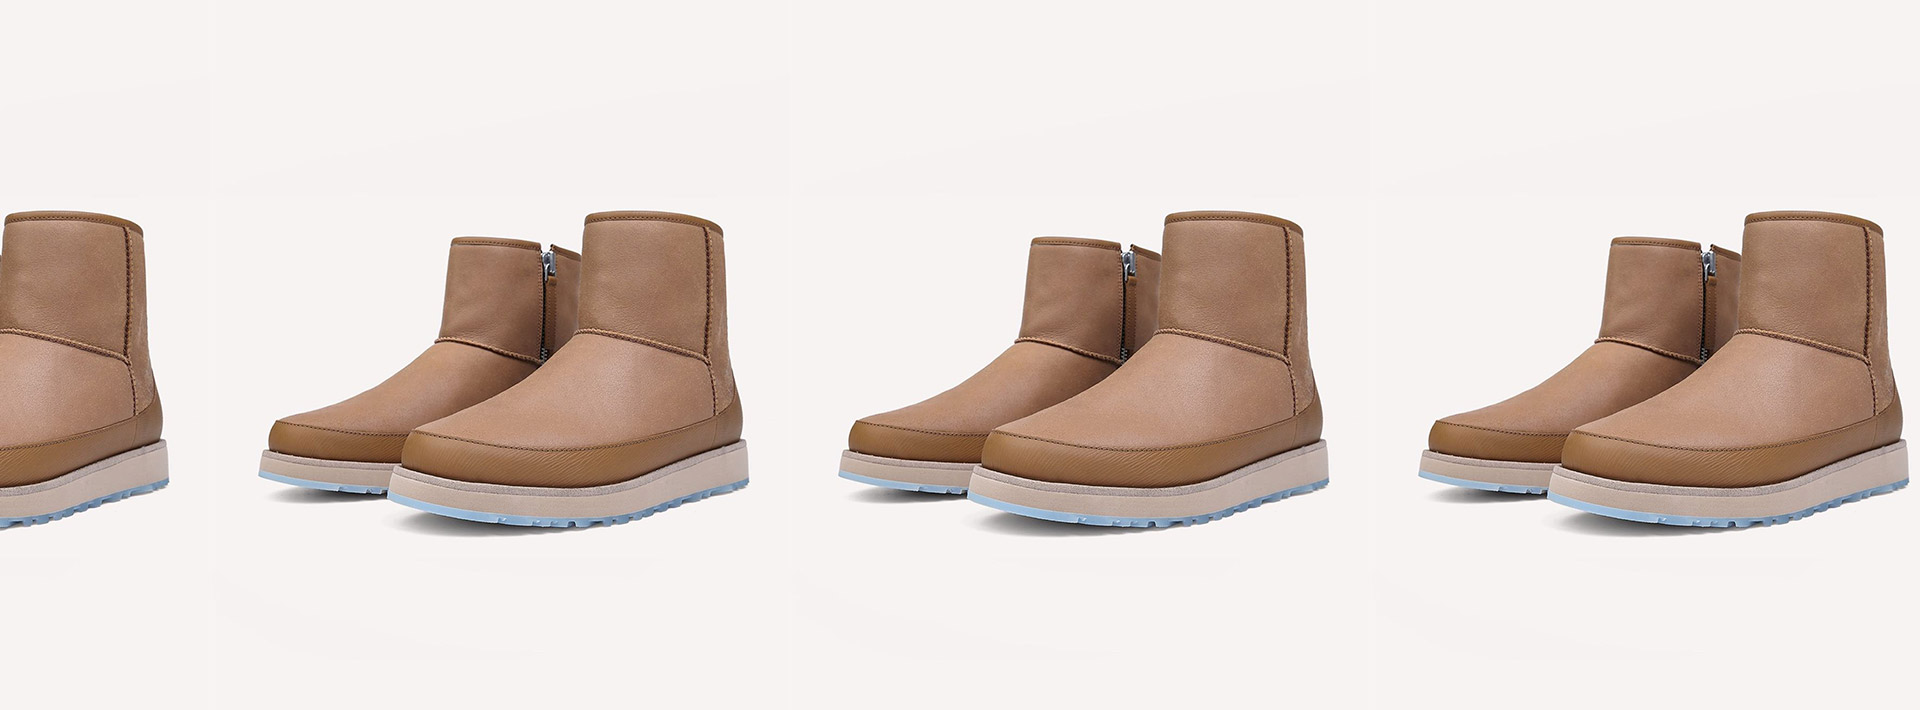 OVADIA x UGG show that is always season to reimagine iconic silhouettes in premium leather.